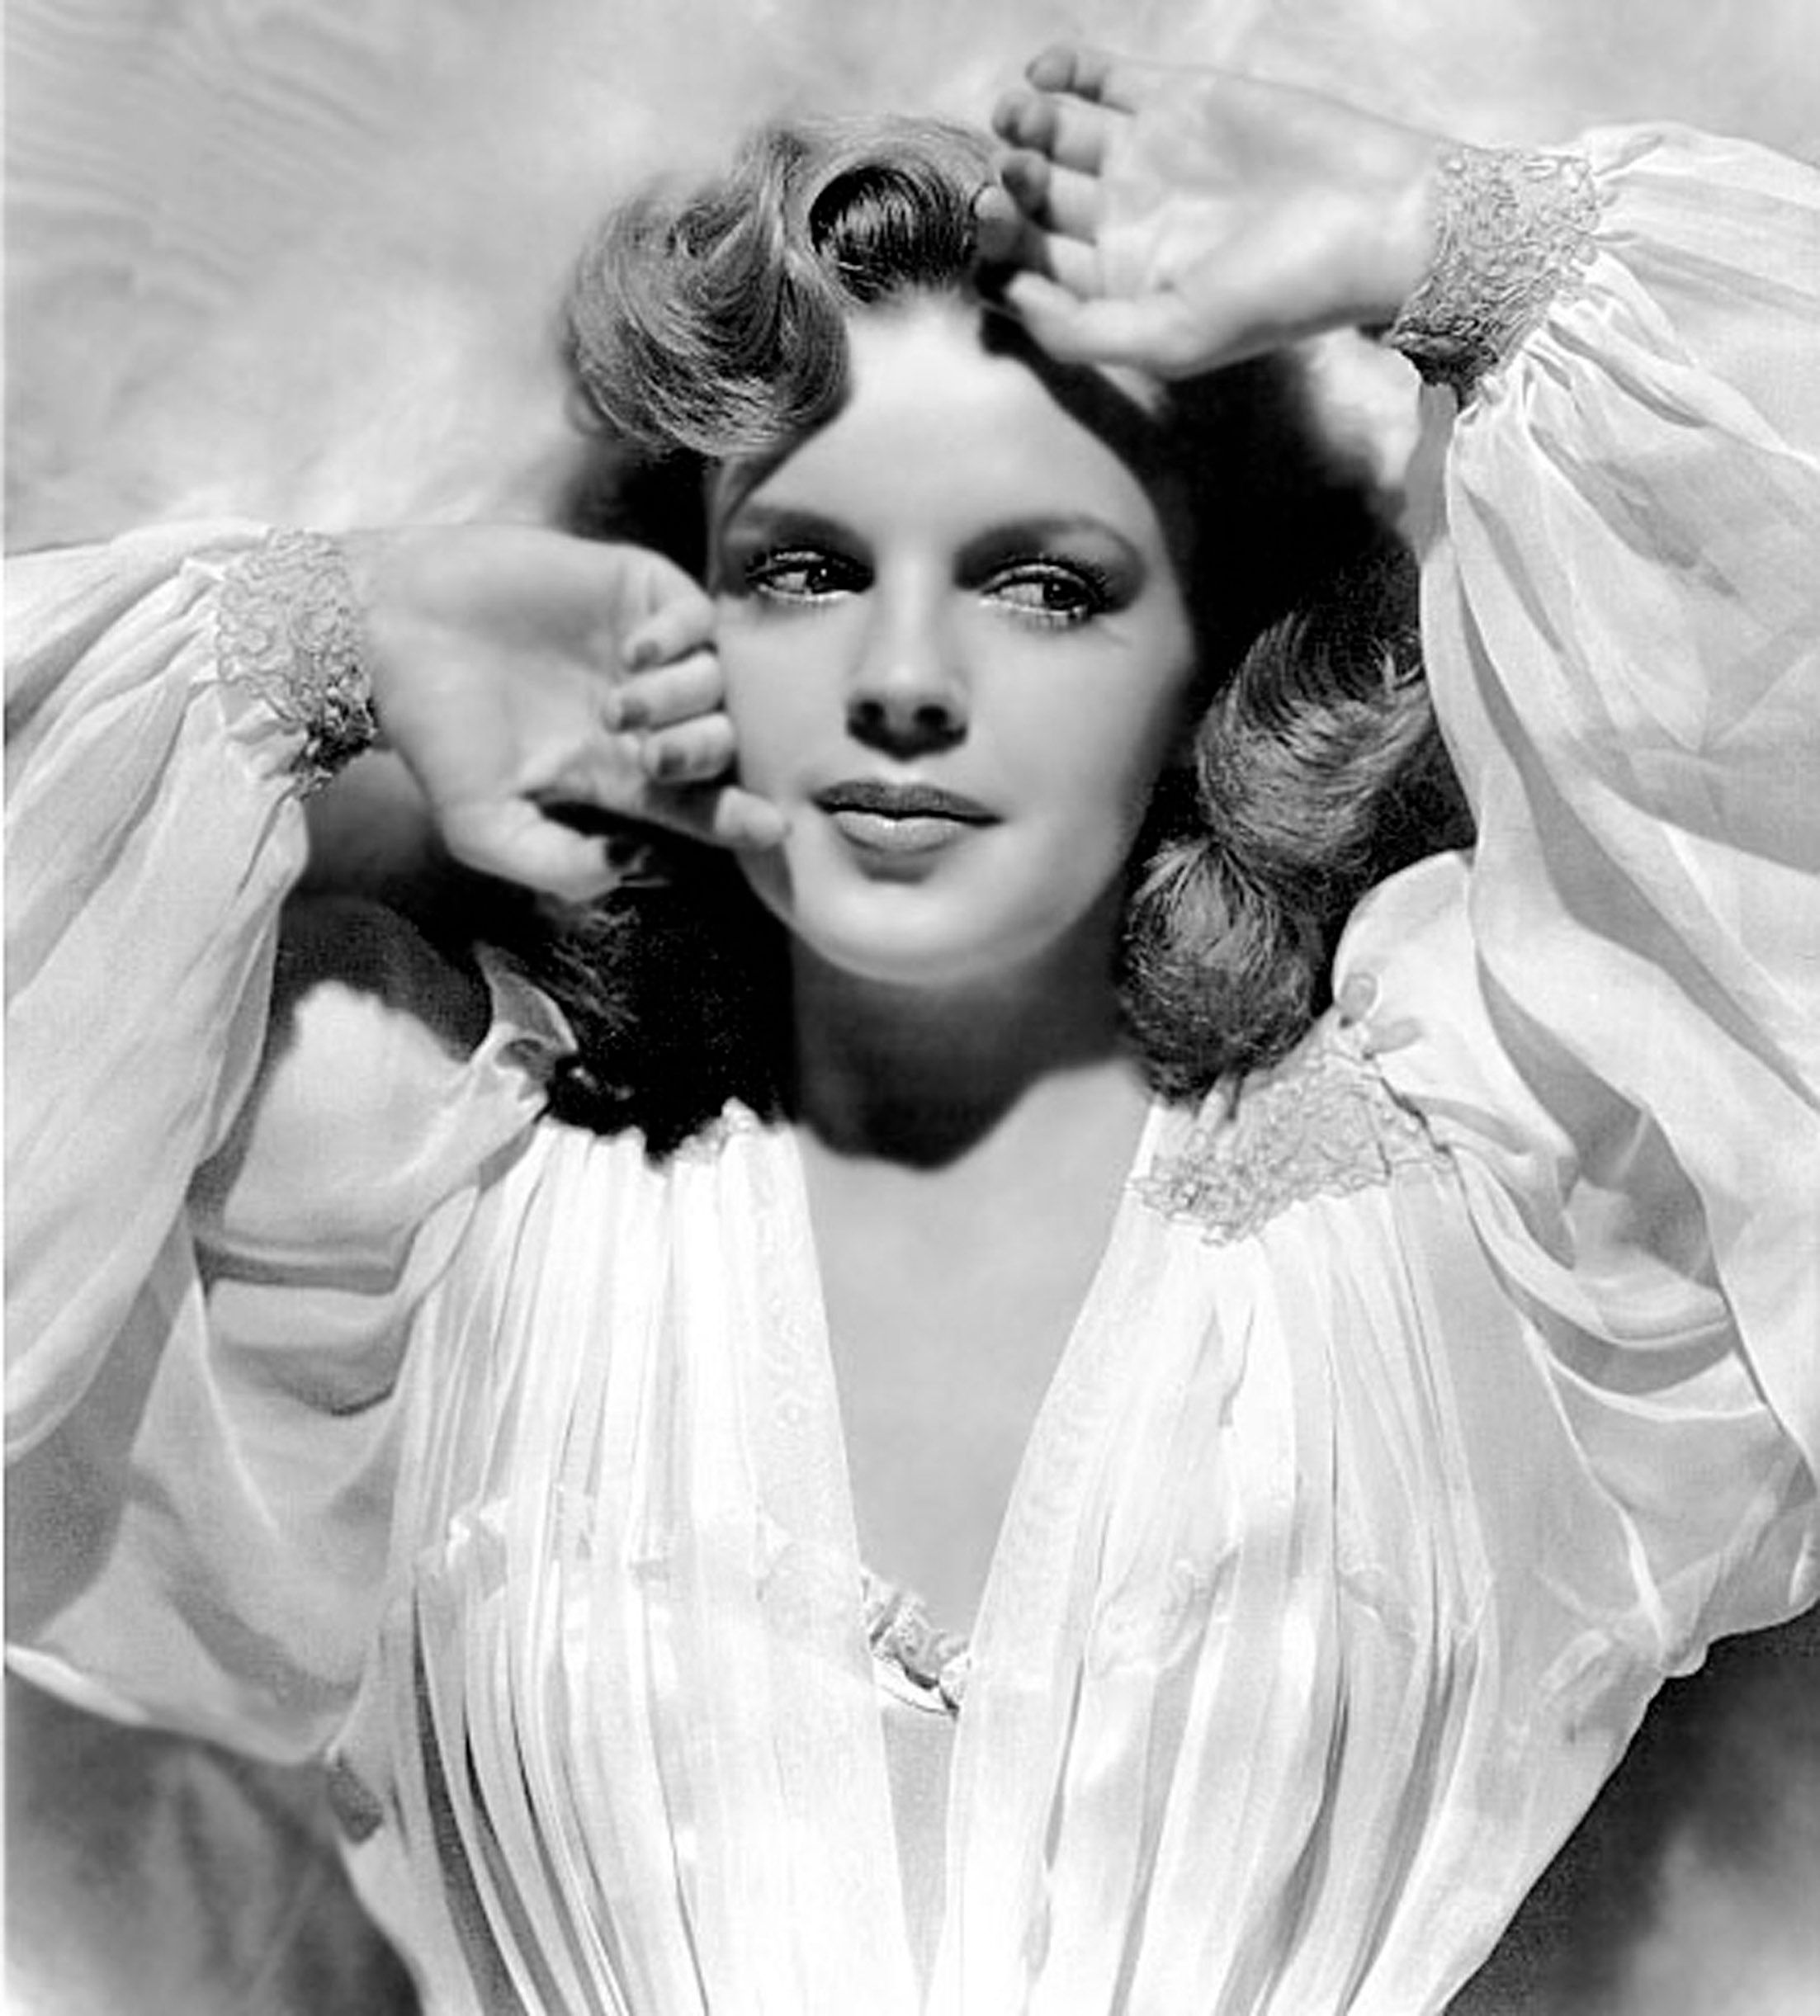 A monochrome portrait of Judy Garland, circa 1942 | Photo: Getty Images